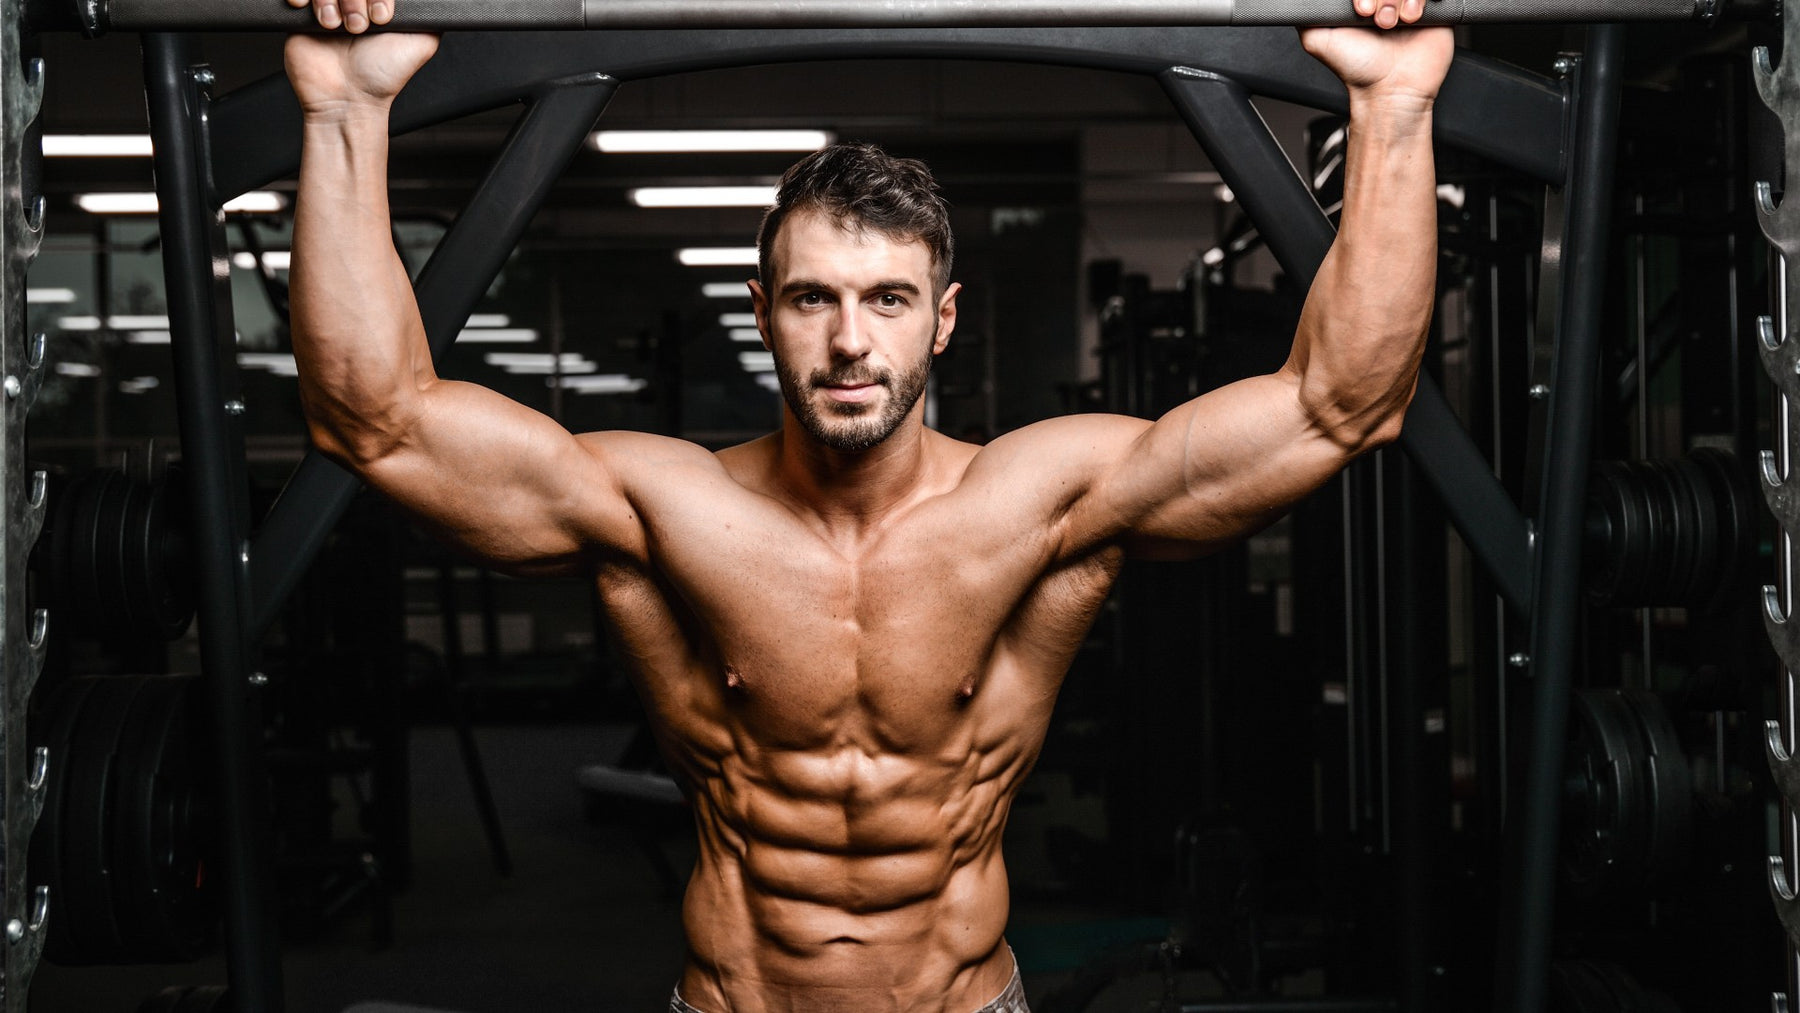 How to Gain Muscle: 7 Proven Beginner Tips